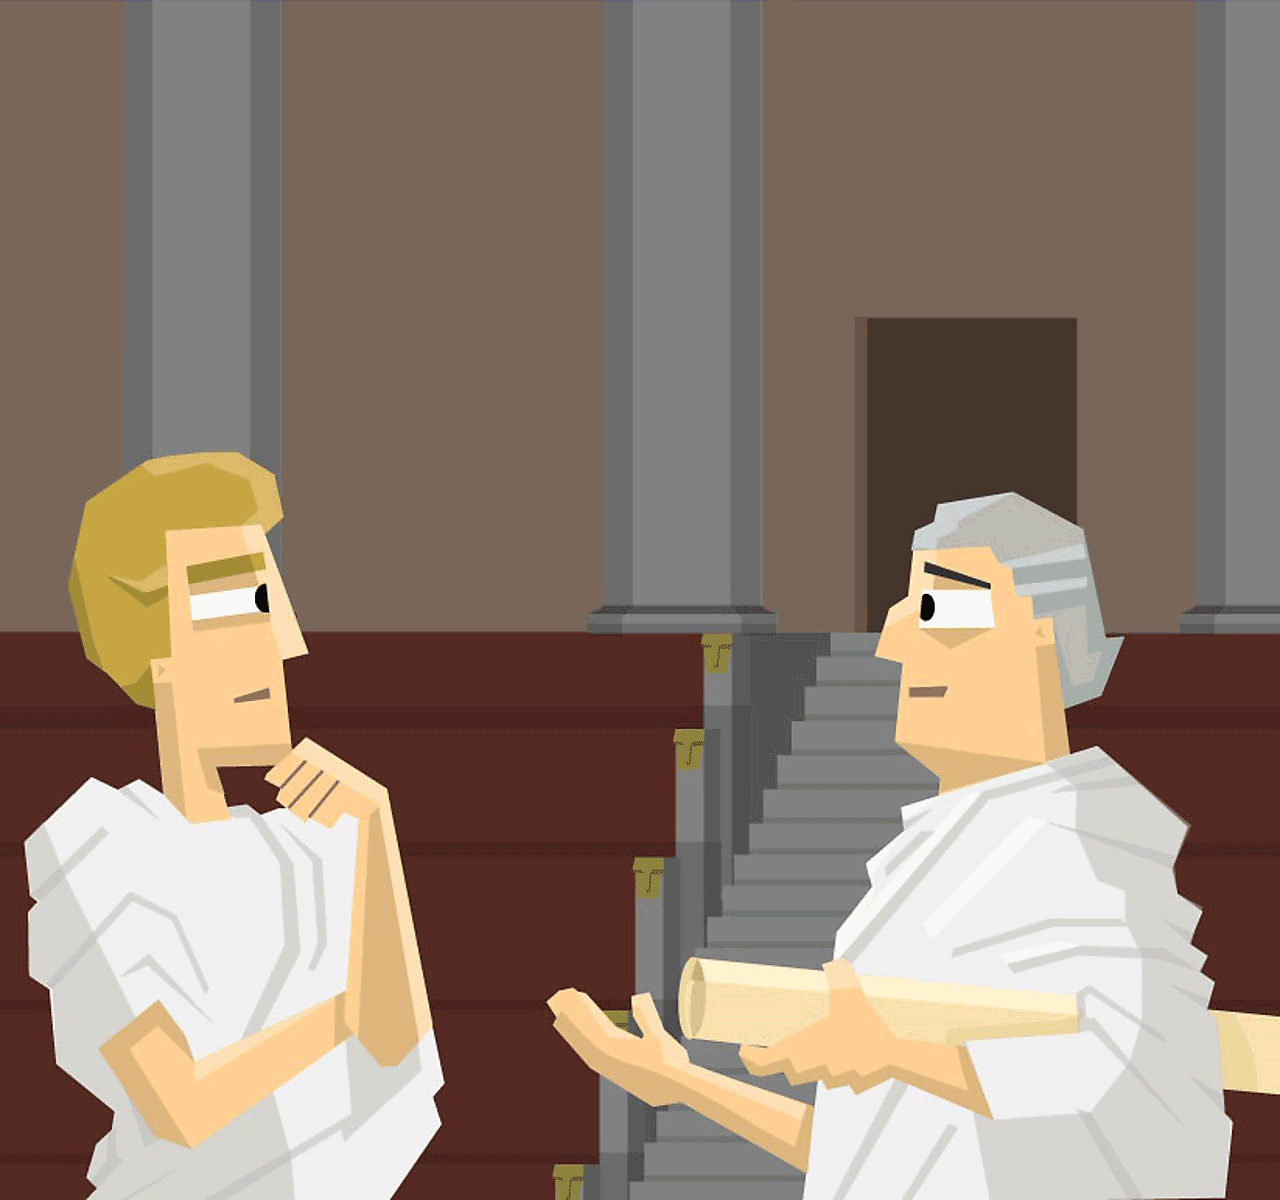 Two Roman senators in discussion.